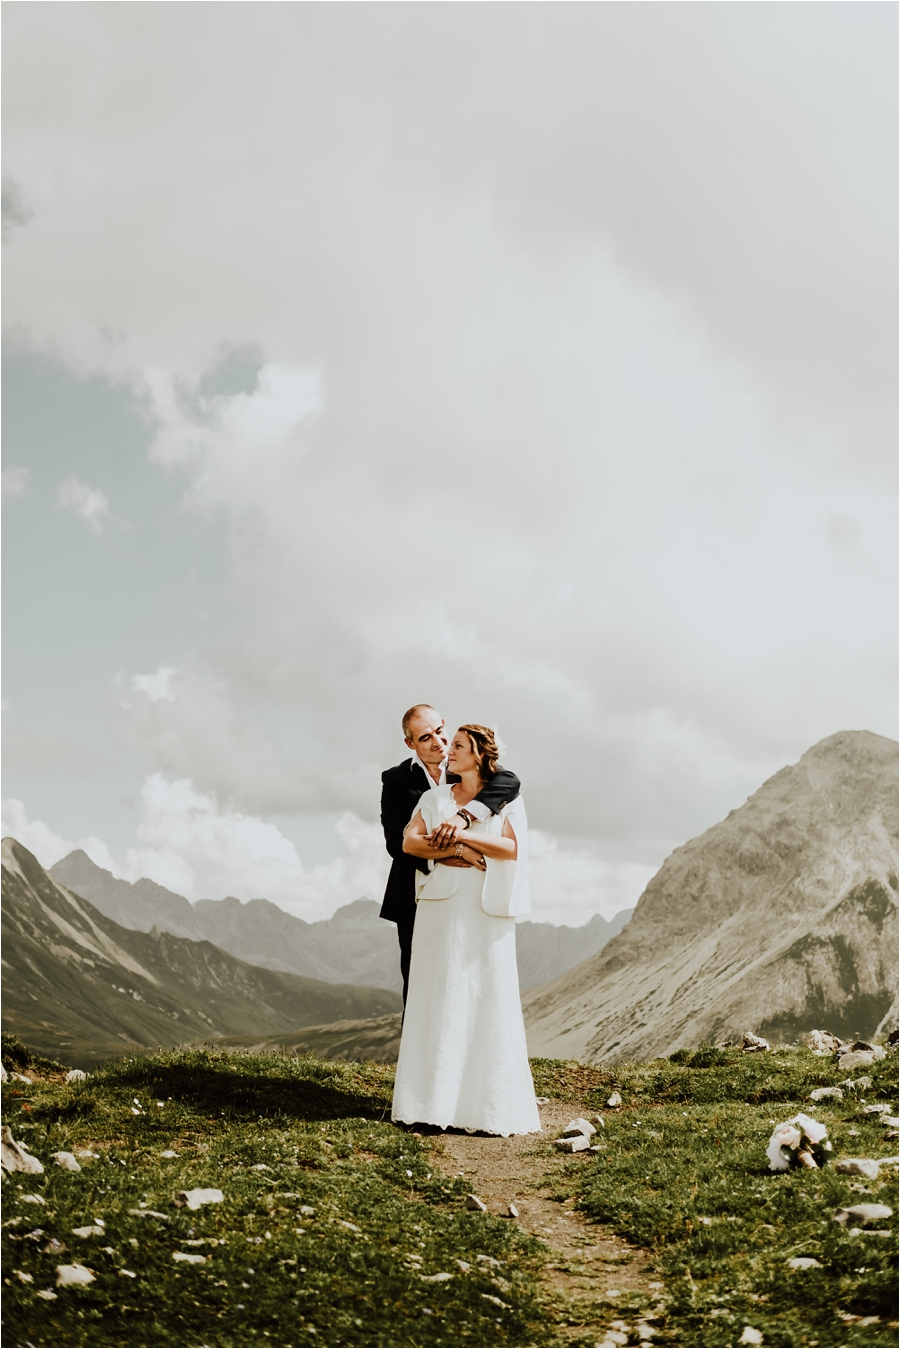 Groom and bride embracing with Lech mountains in the background Image by Wild Connections Photography